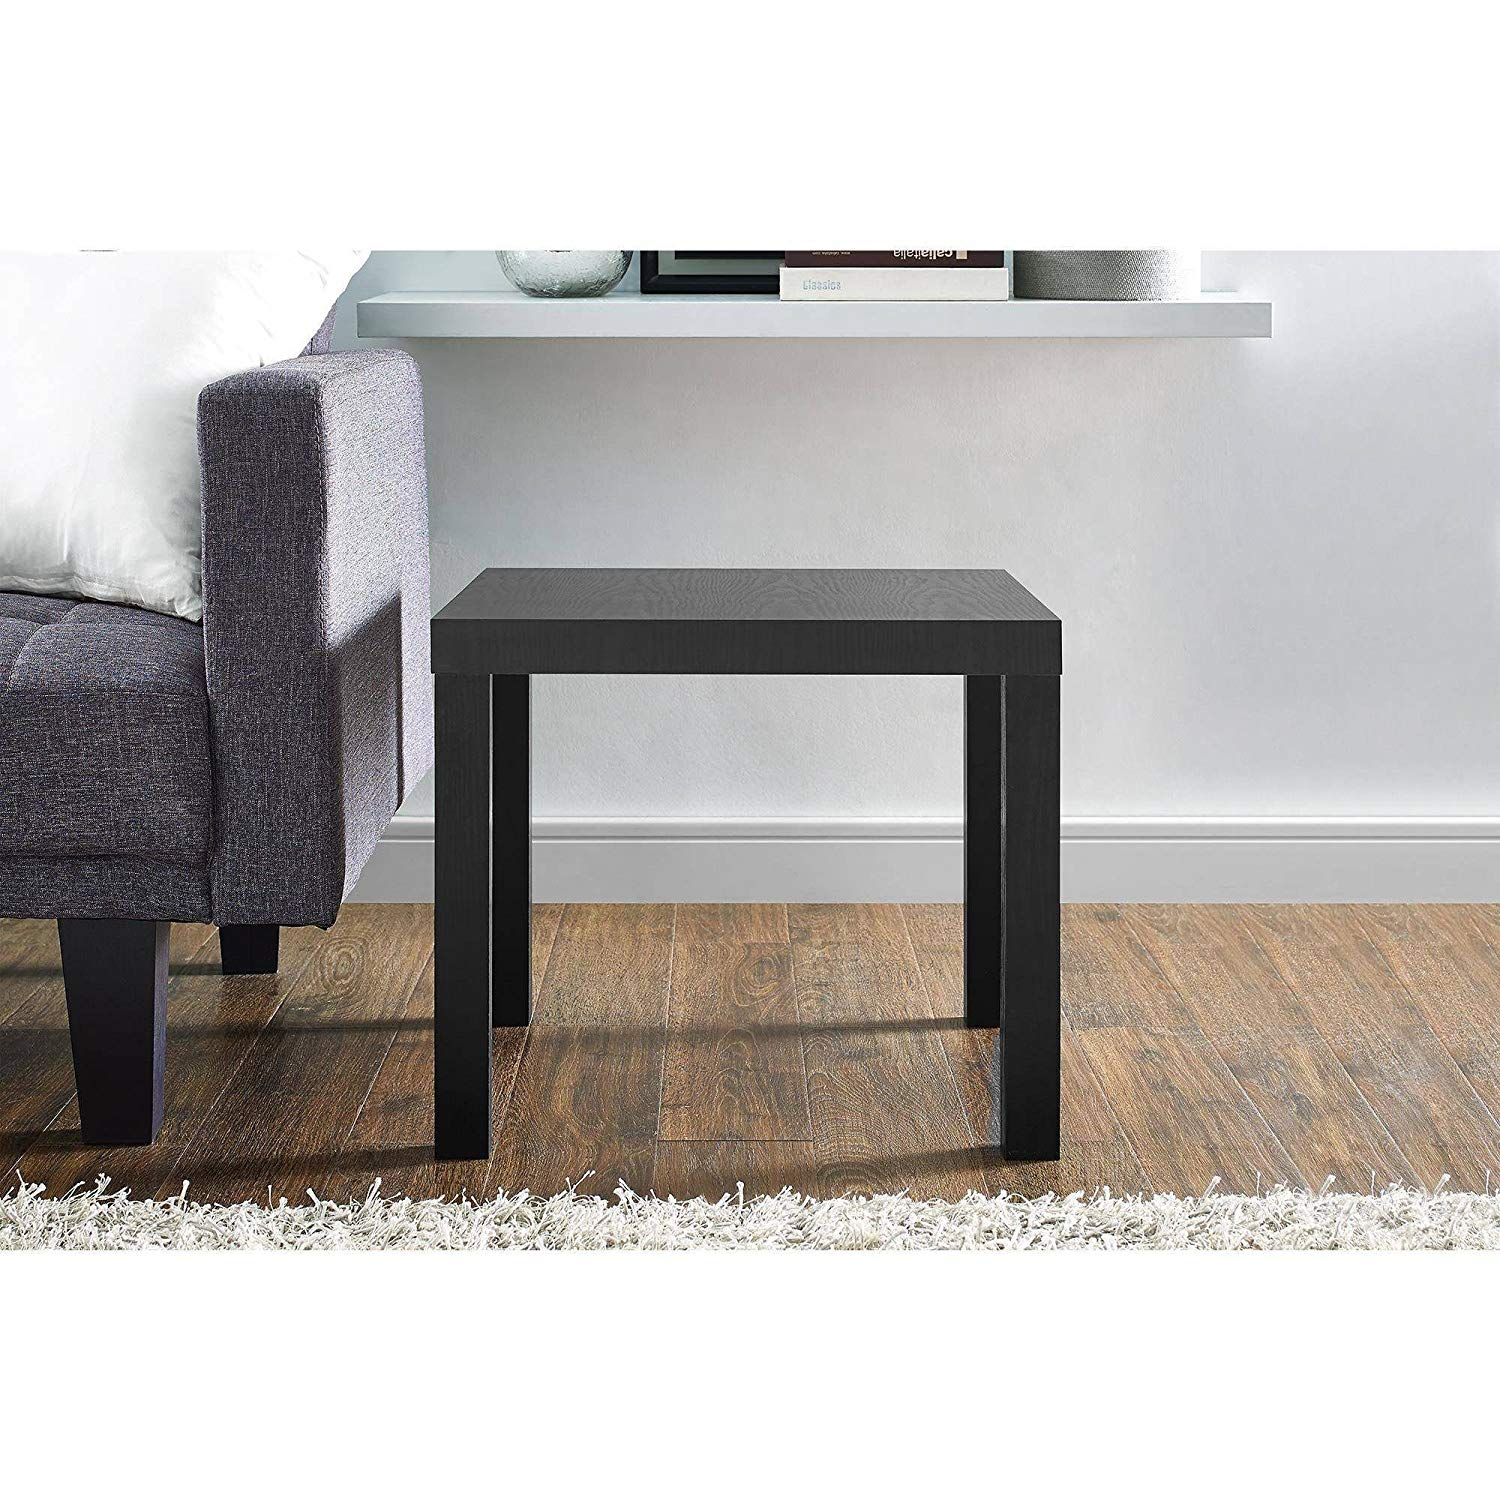 mainstays parsons end table multiple colors black accent marble kitchen dining coffee with wheels ikea solid oak tables room chairs keter drinks cooler seats grey mirrored bedside